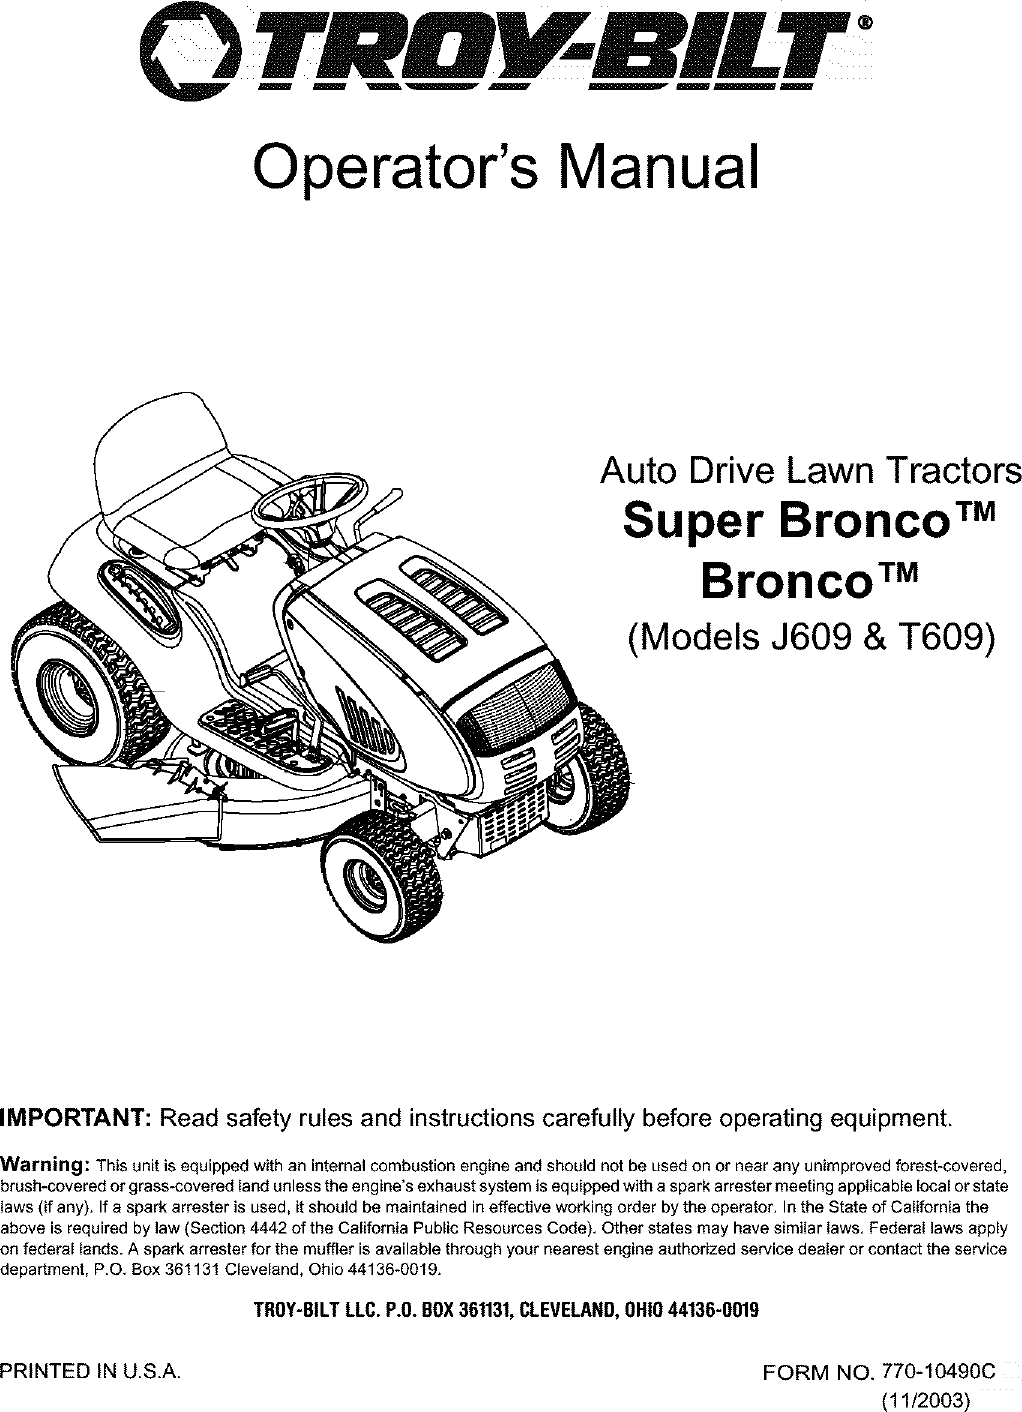 Troybilt 13AJ609G766 User Manual LAWN TRACTOR Manuals And